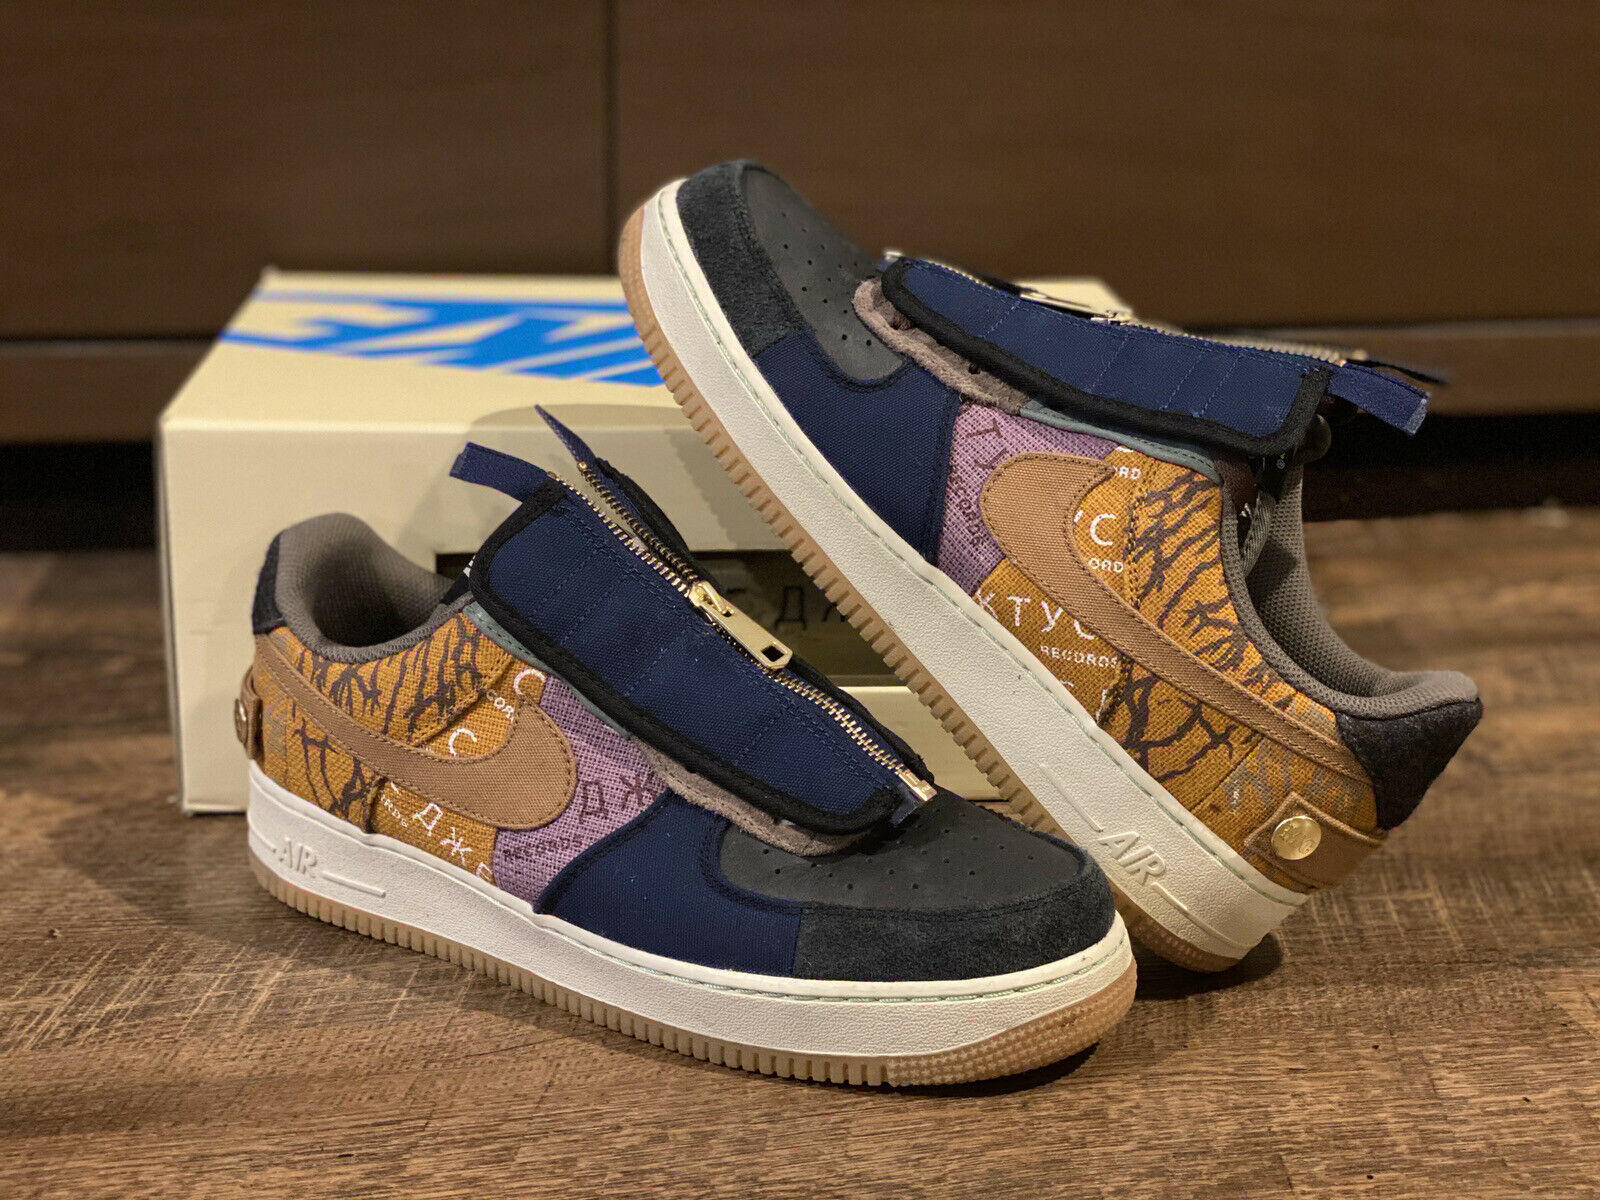 Nike Air Force 1 Low Travis Scott Cactus Jack TD